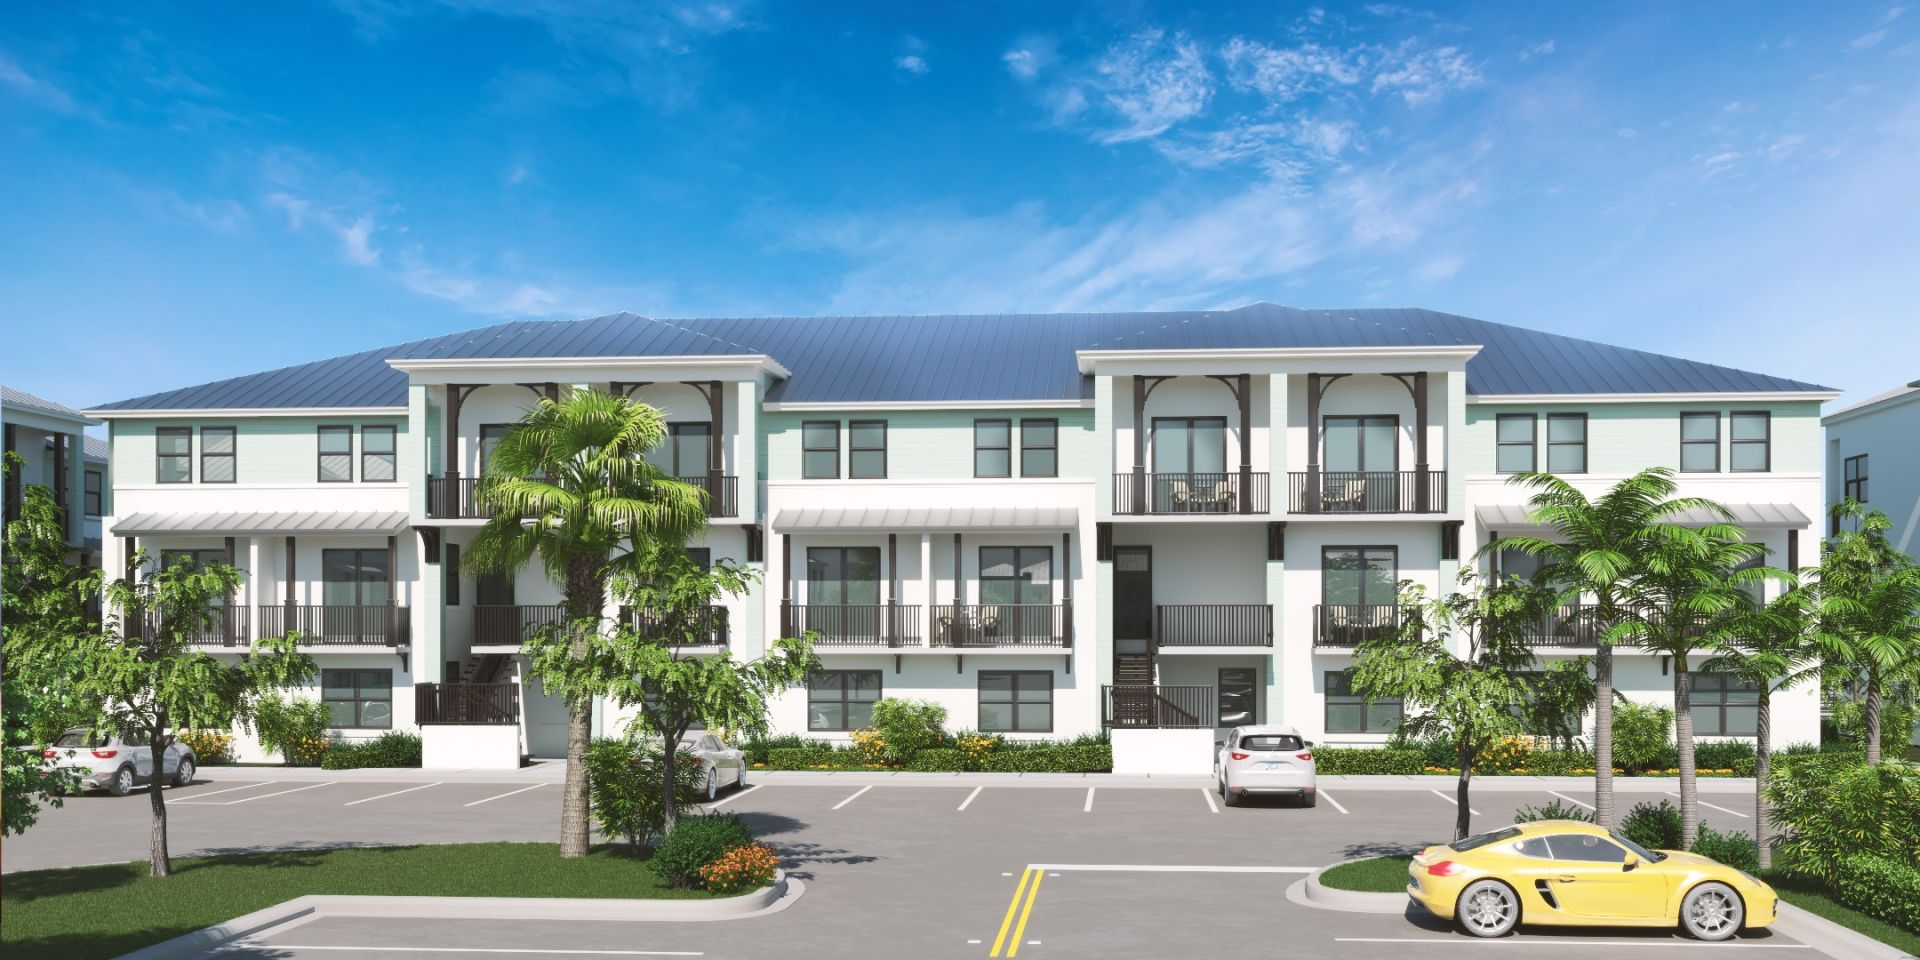 Apartments to Rise on South Florida Site Formerly Earmarked for Industrial